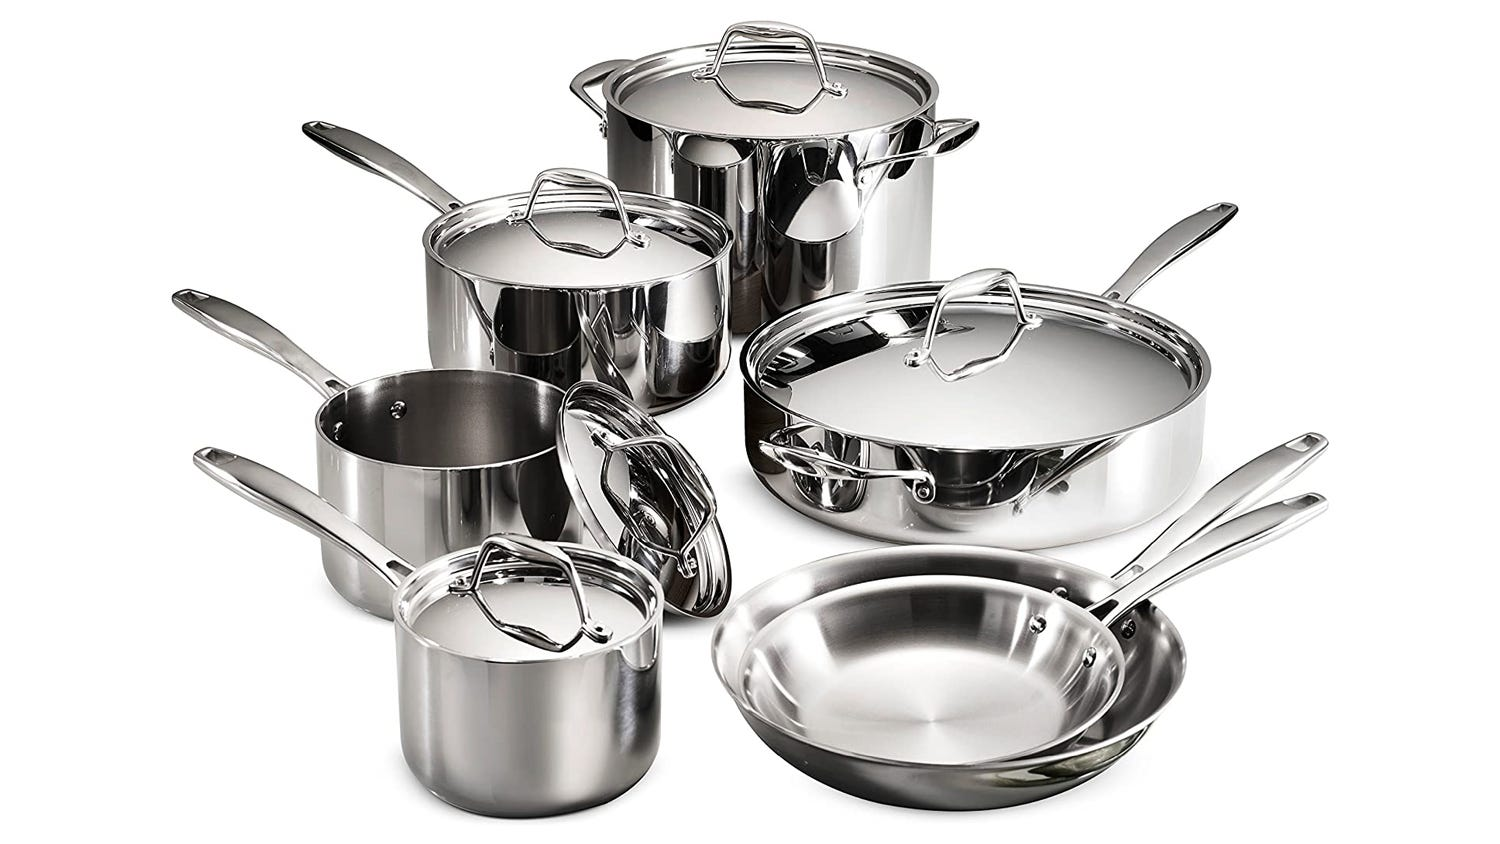 Save on the Tramontina 12-Piece cookware set now